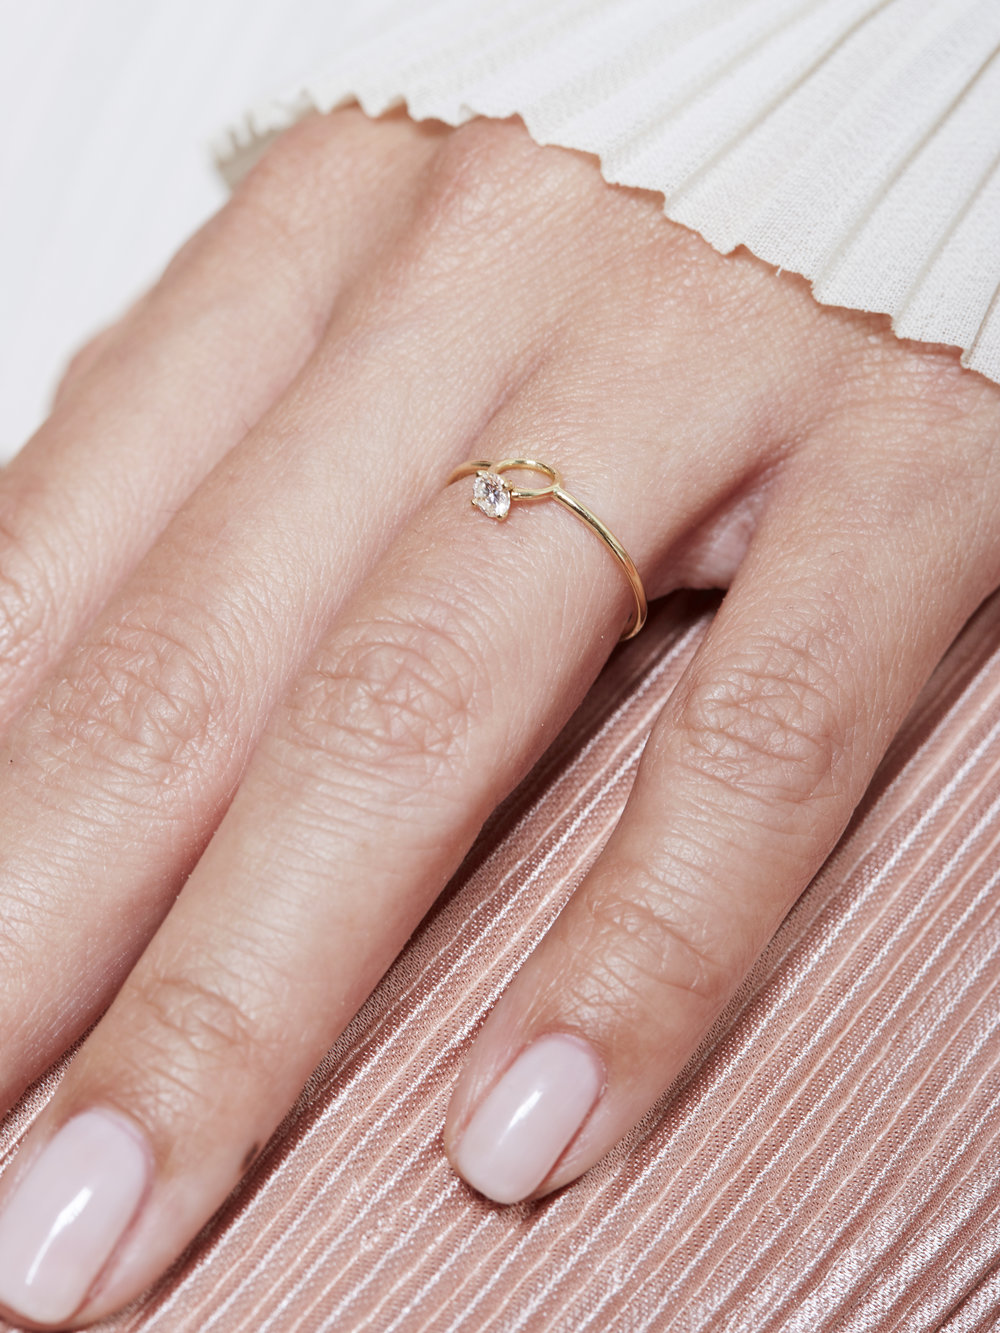 PETITE ENGAGEMENT RING — COMMA JEWELRY